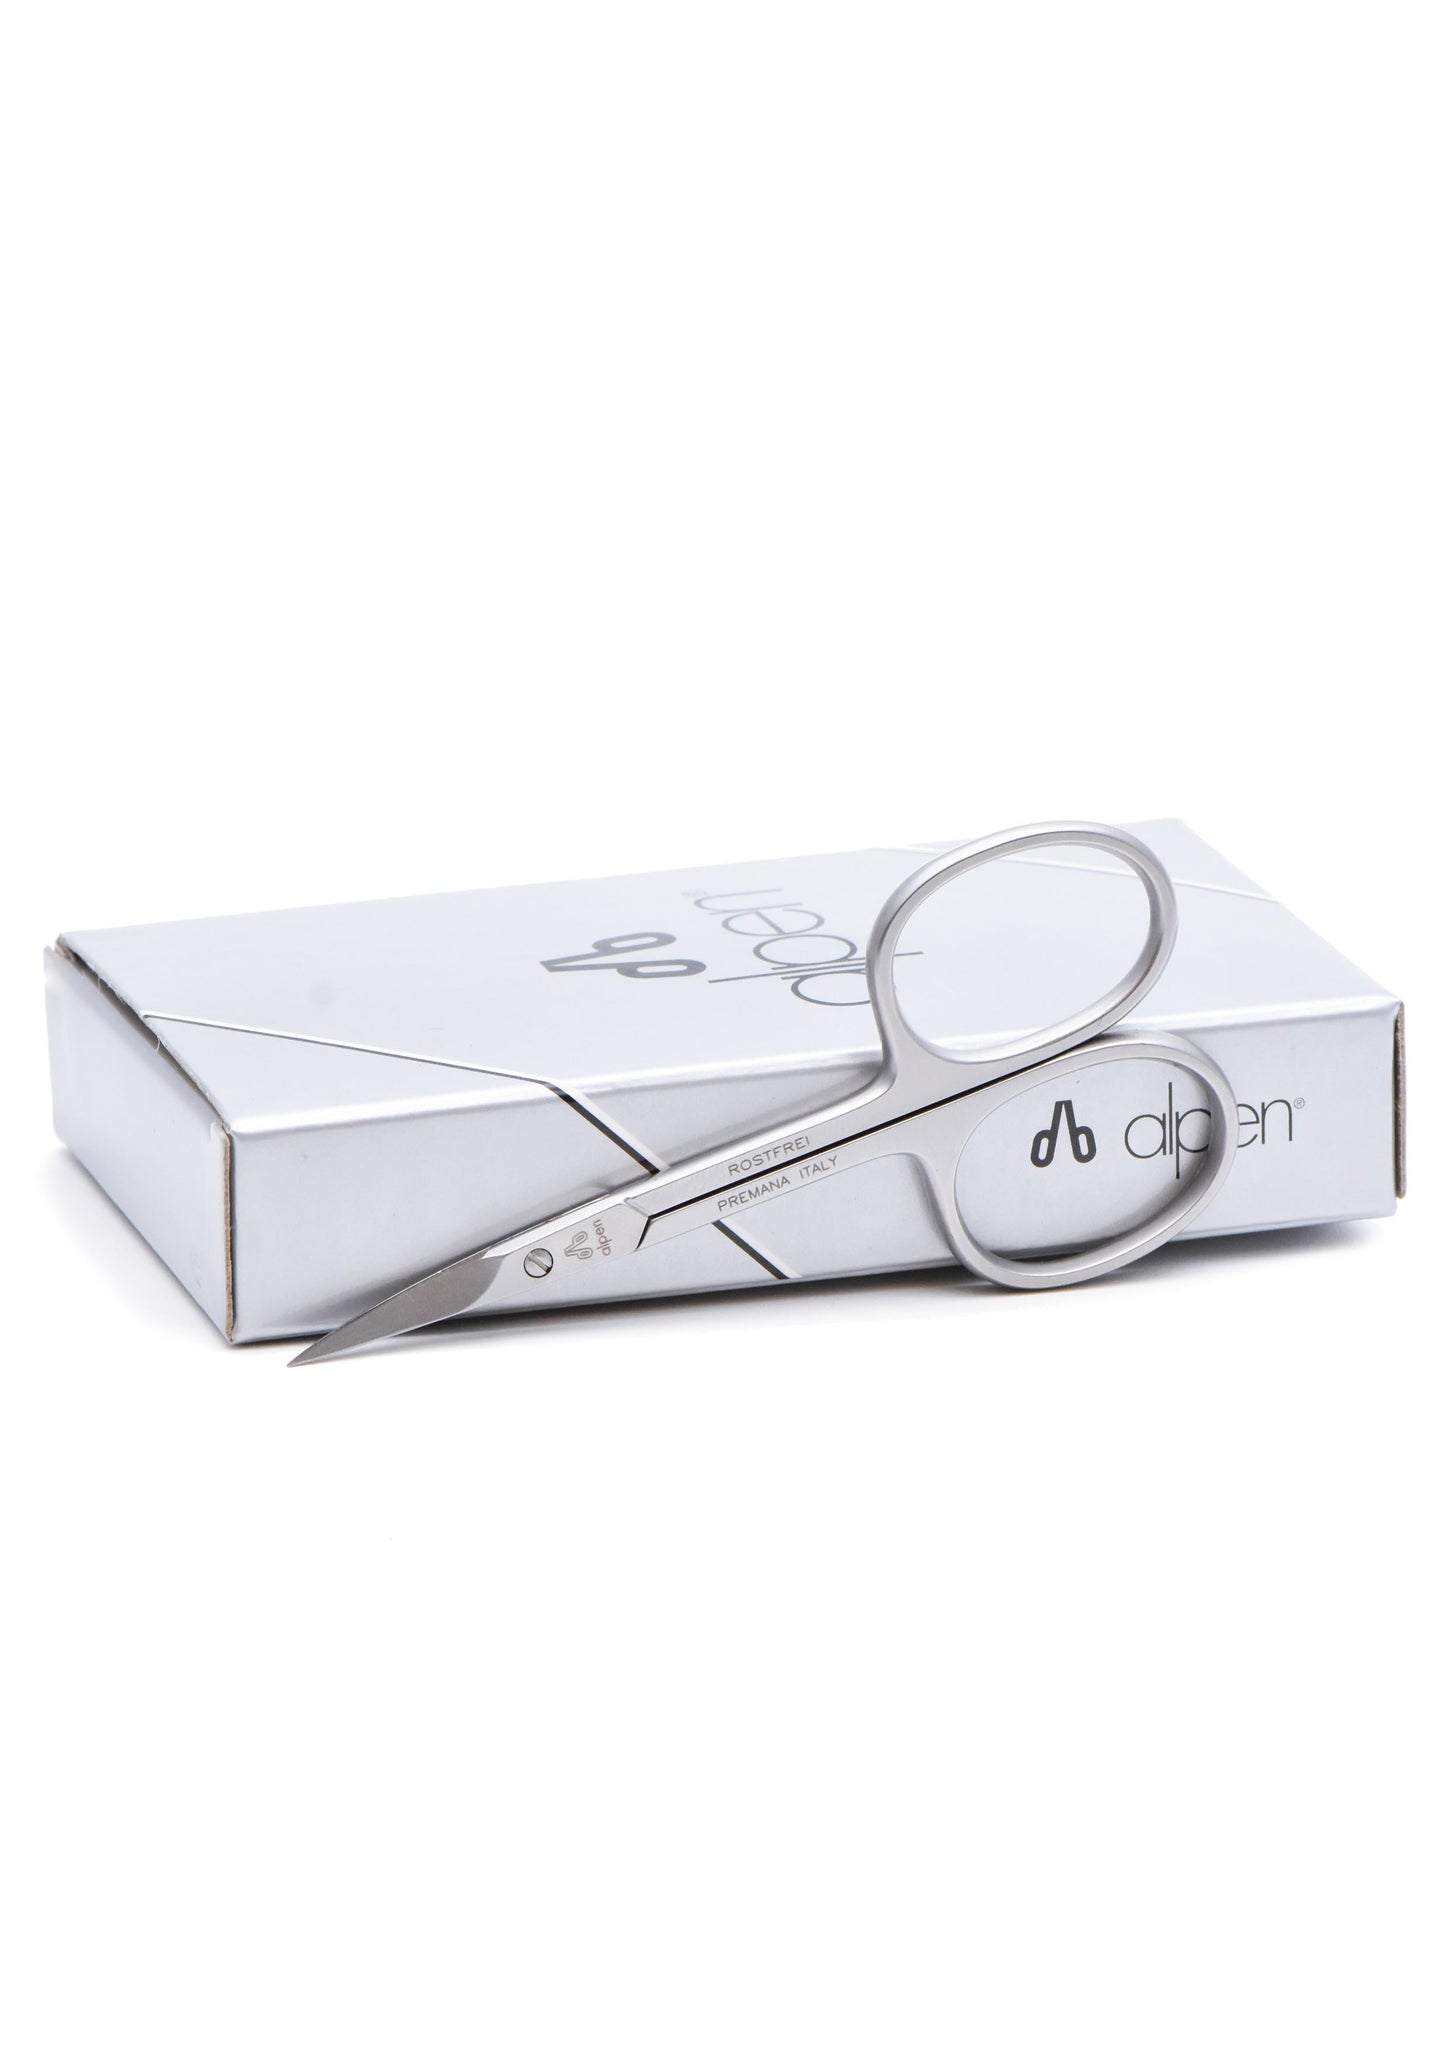 Alpen, CURVED CUTICLE SCISSORS Satin Inox